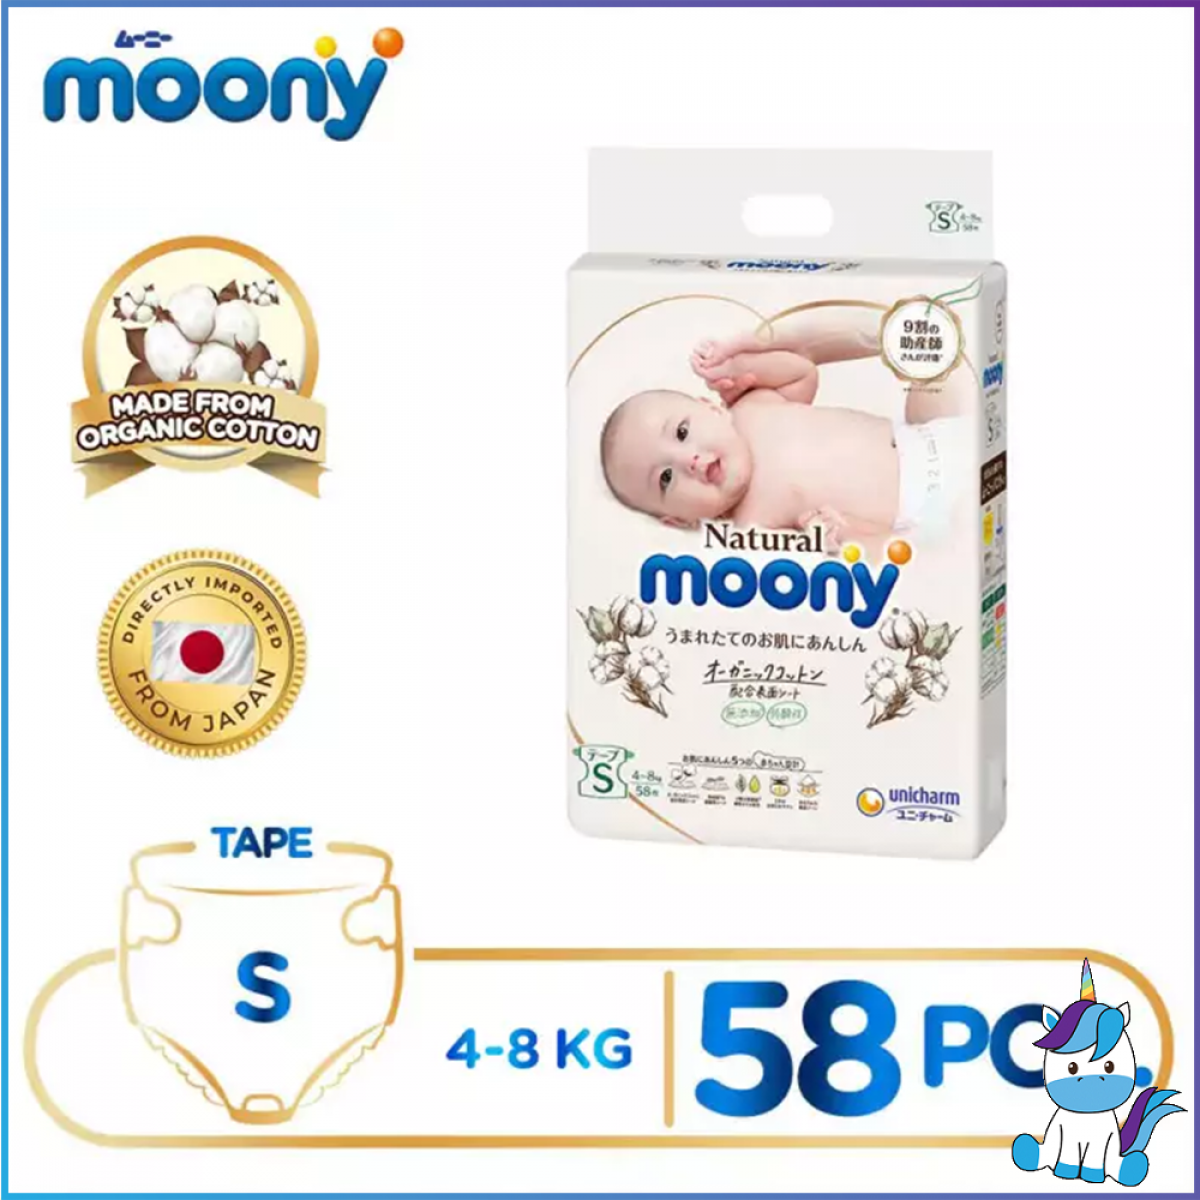 MOONY Natural Organic Cotton Tape  (NB, S, M, L) Japan First's Organic Cotton - Made in Japan